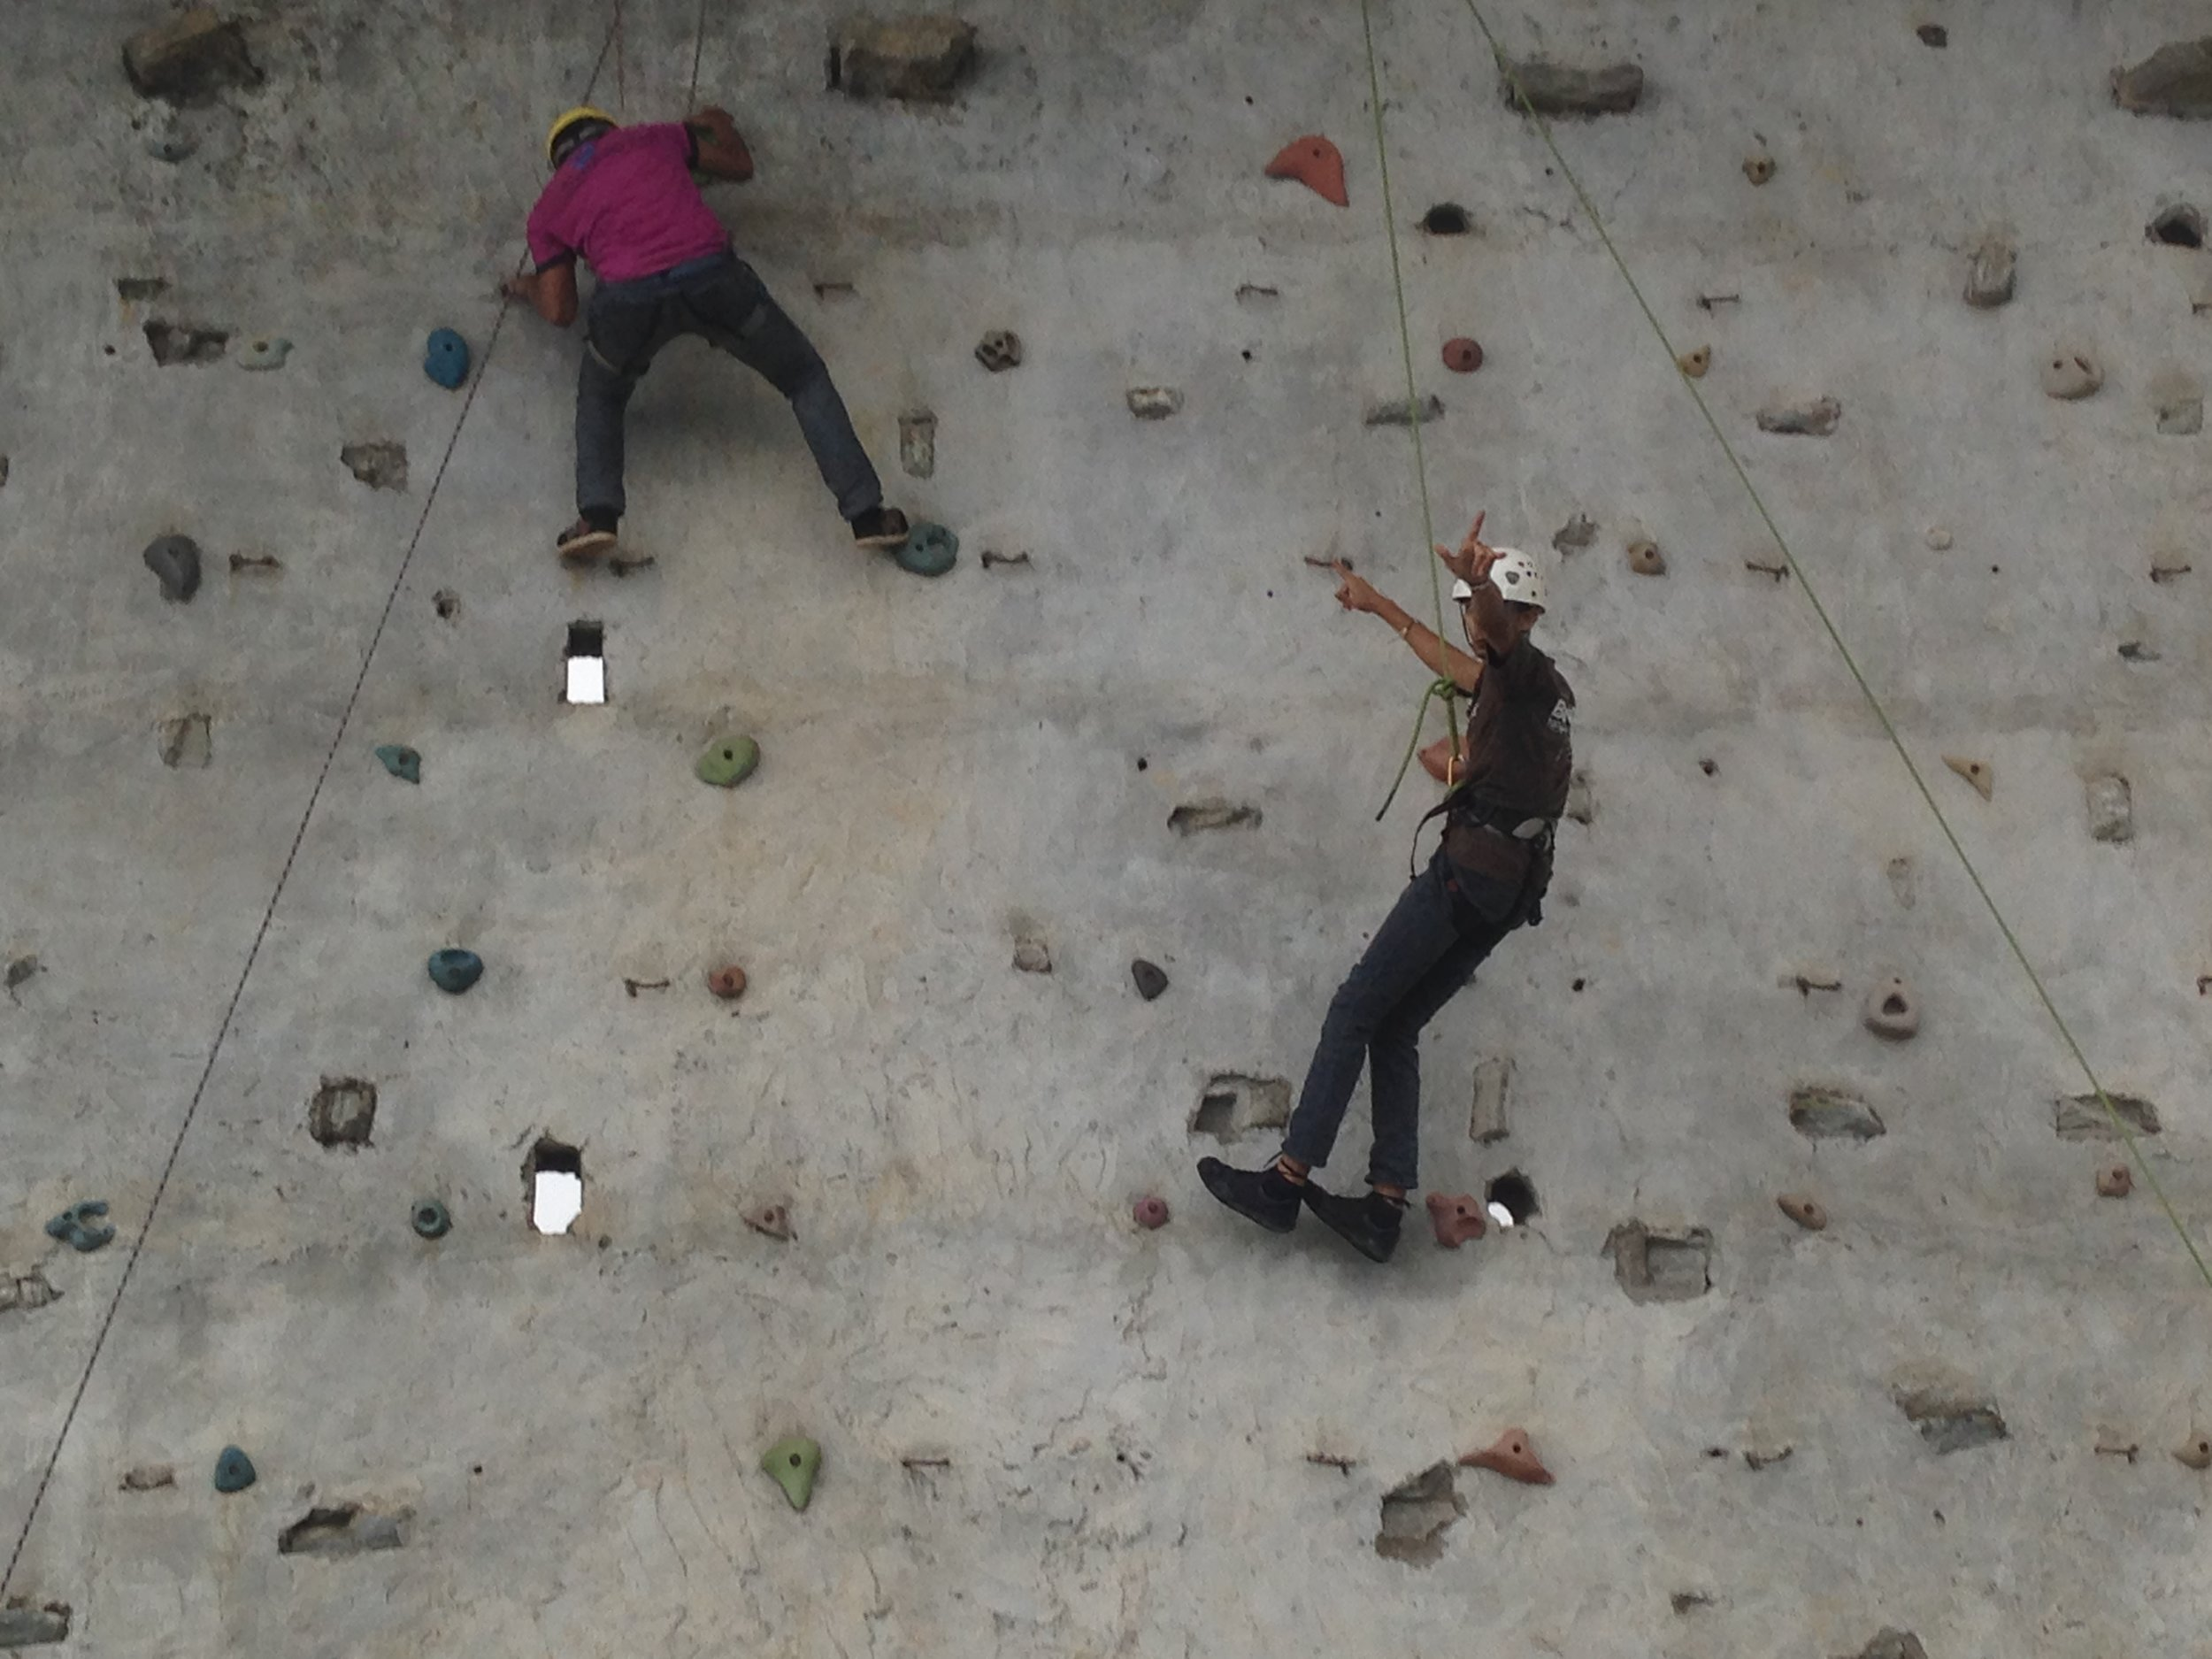 Wall climbing activity that challenged youth to work in teams and reach their physical potential